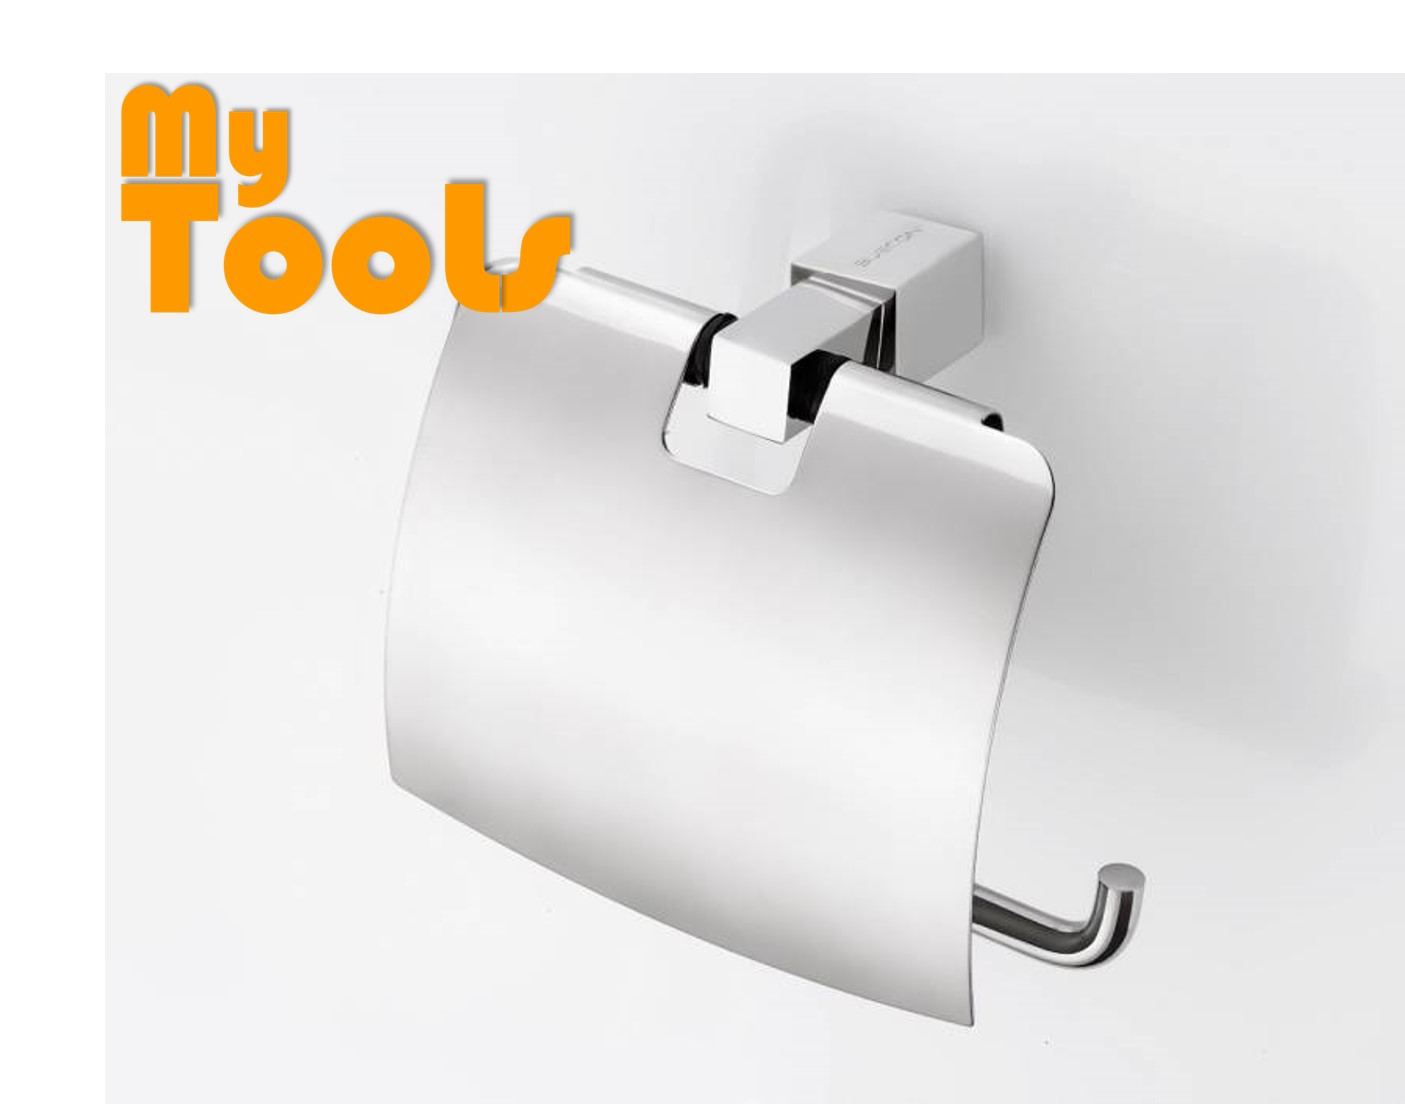 Mytools Stainless Steel Bathroom Toilet Paper Holder Roll Tissue Box Wall Mounted